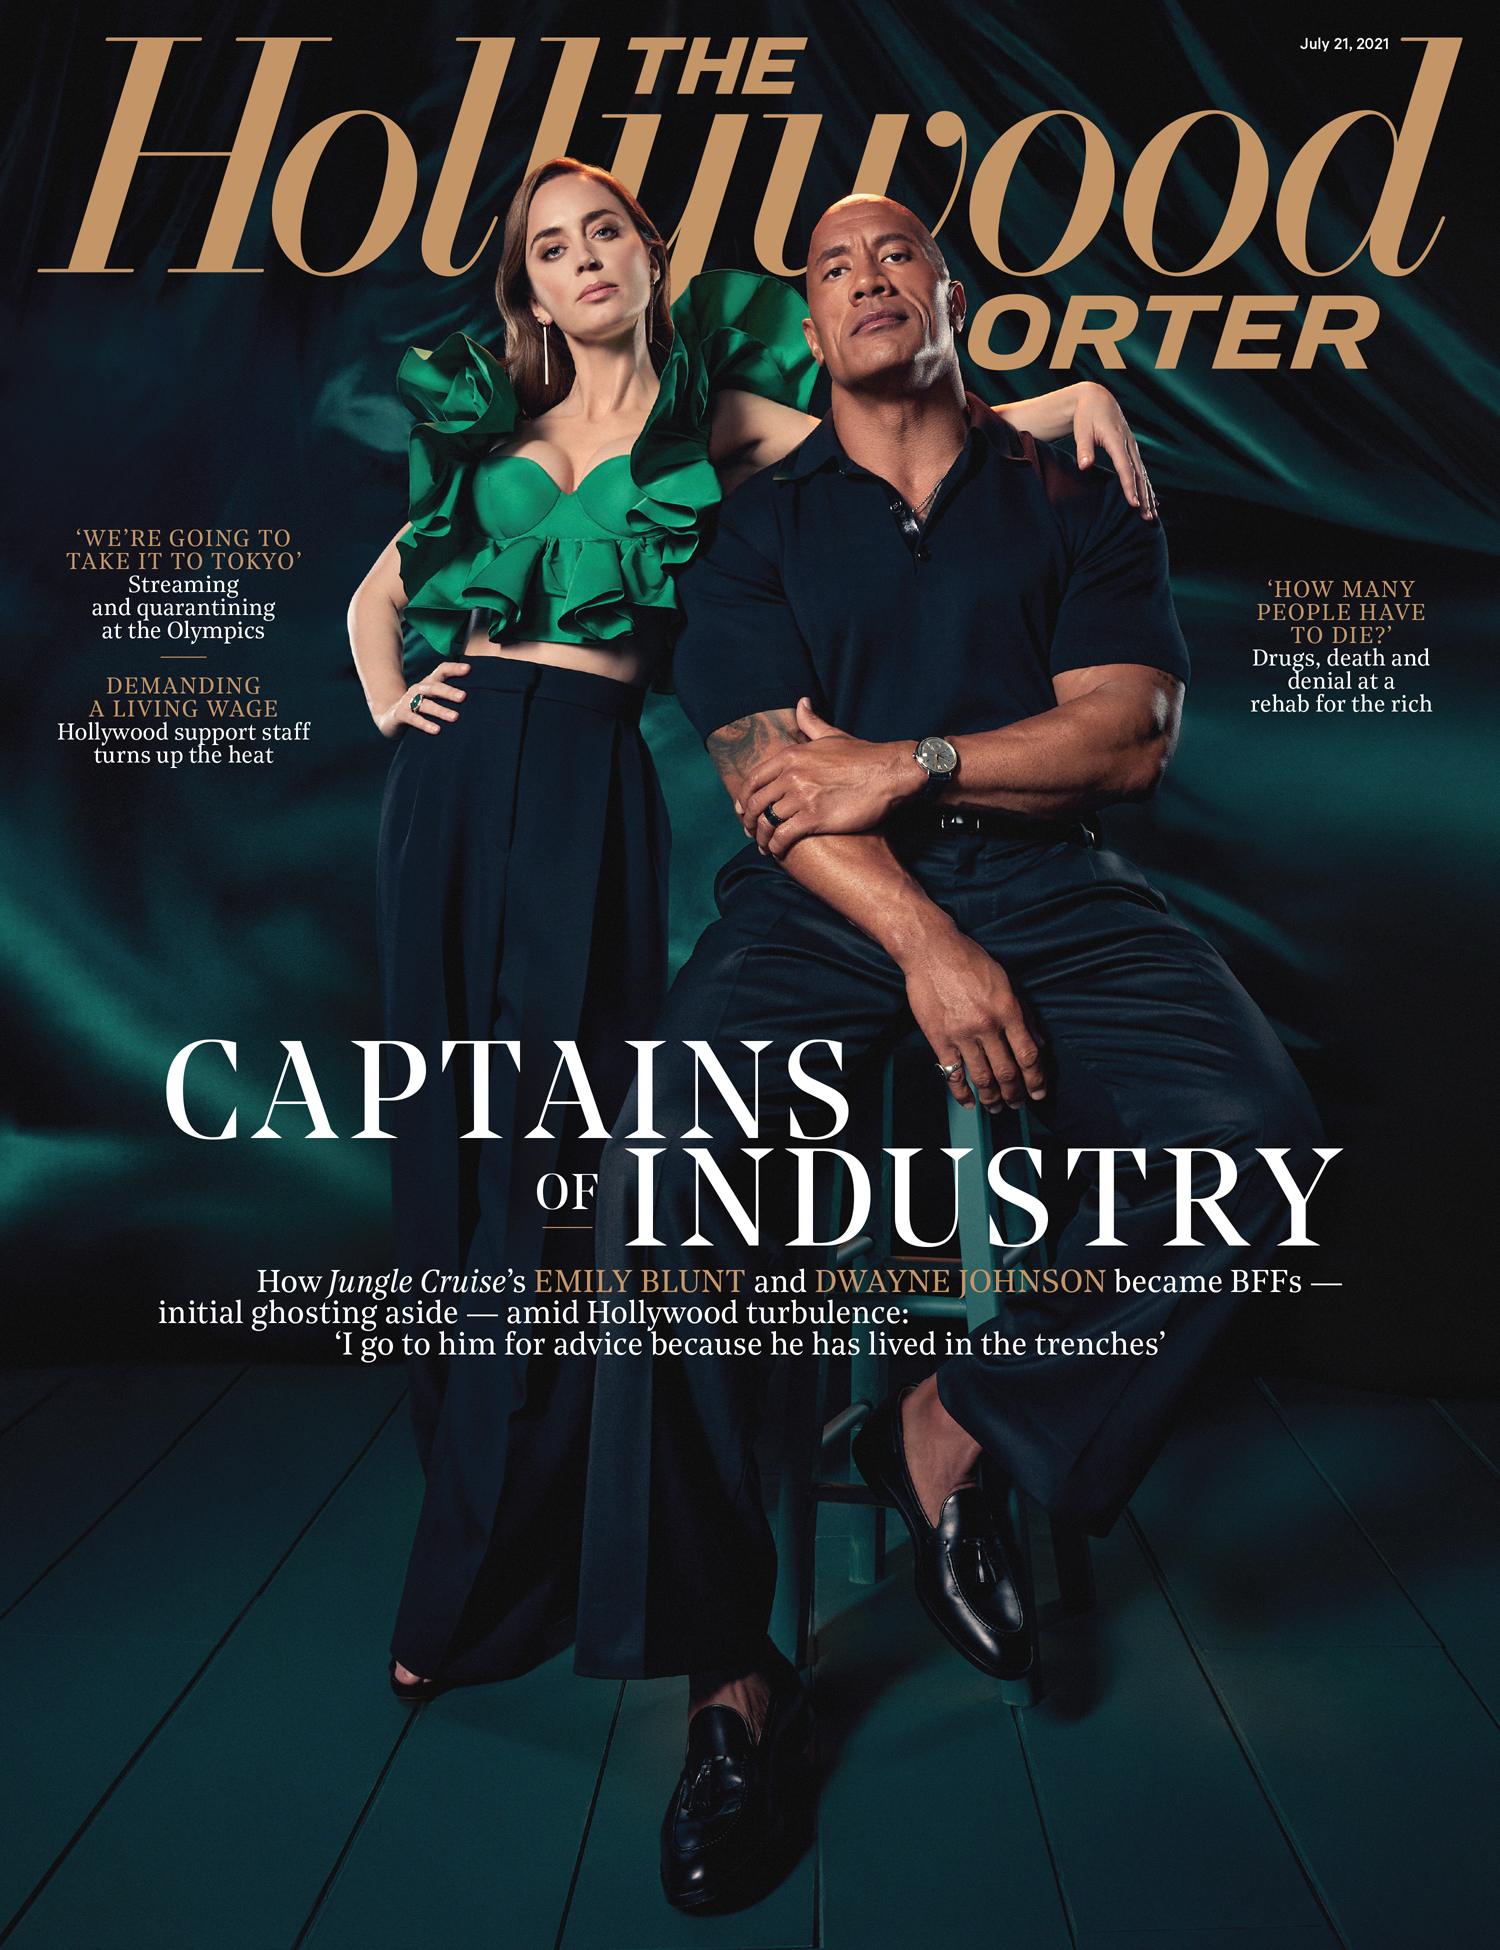 Emily Blunt and Dwayne Johnson The Hollywood Reporter